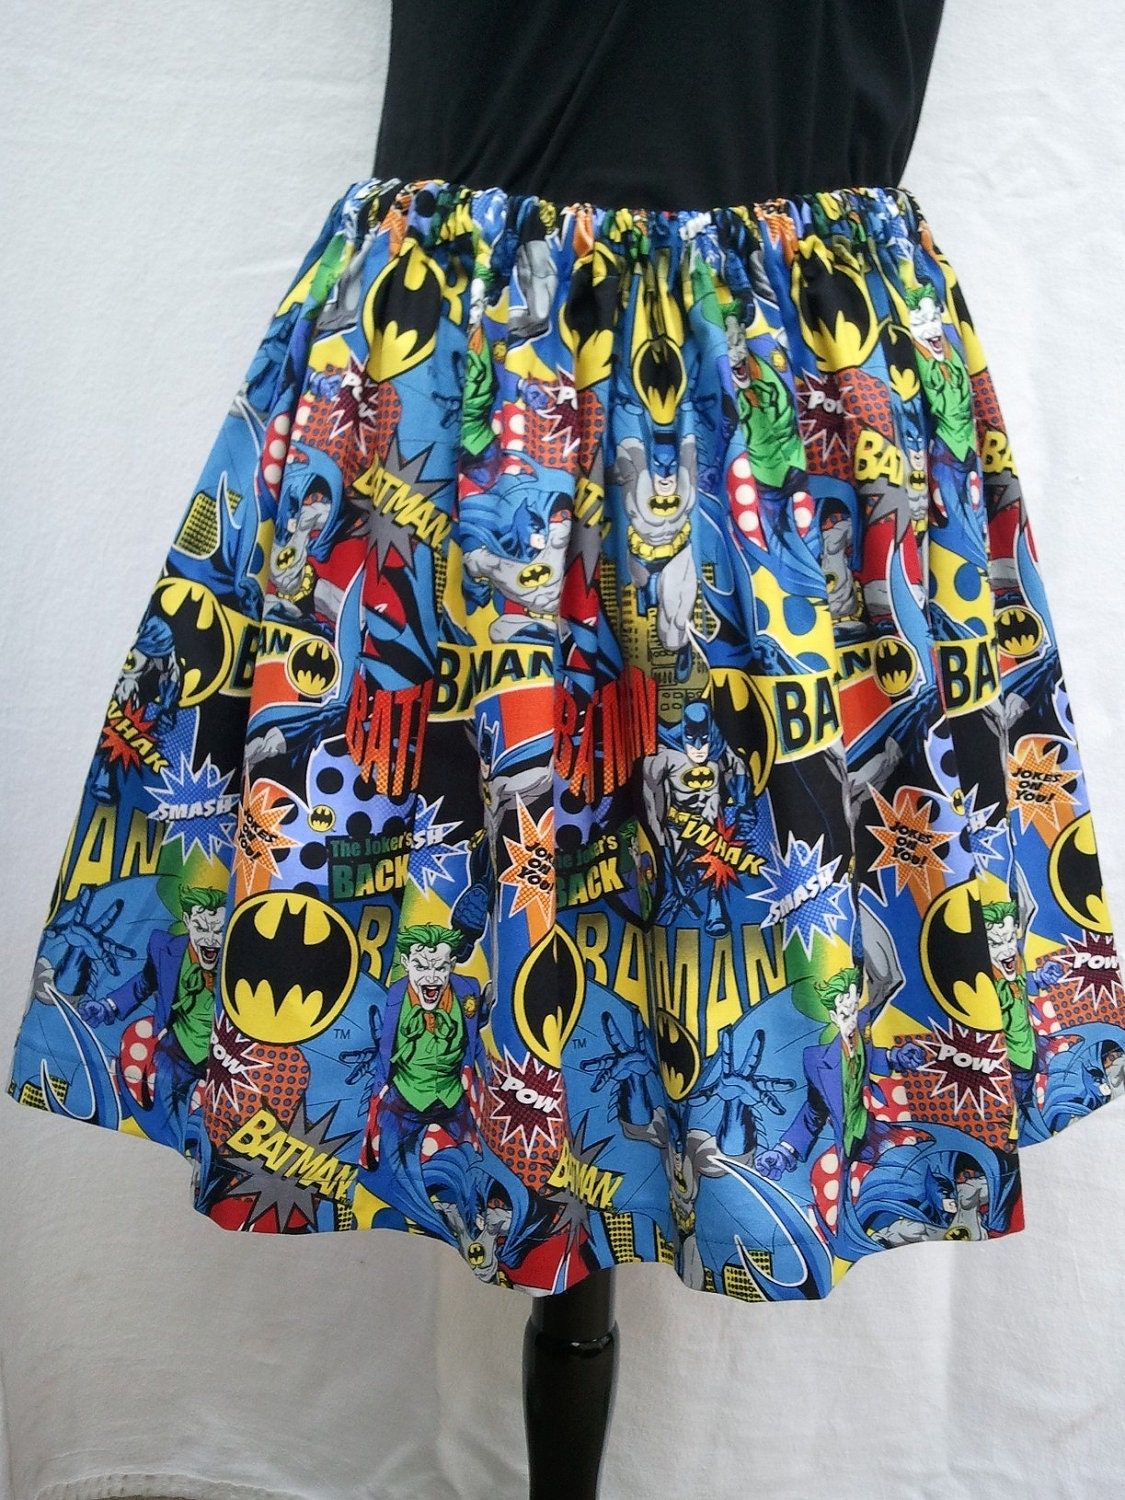 Women's Full Skirt Made From Batman Fabric Three Choices